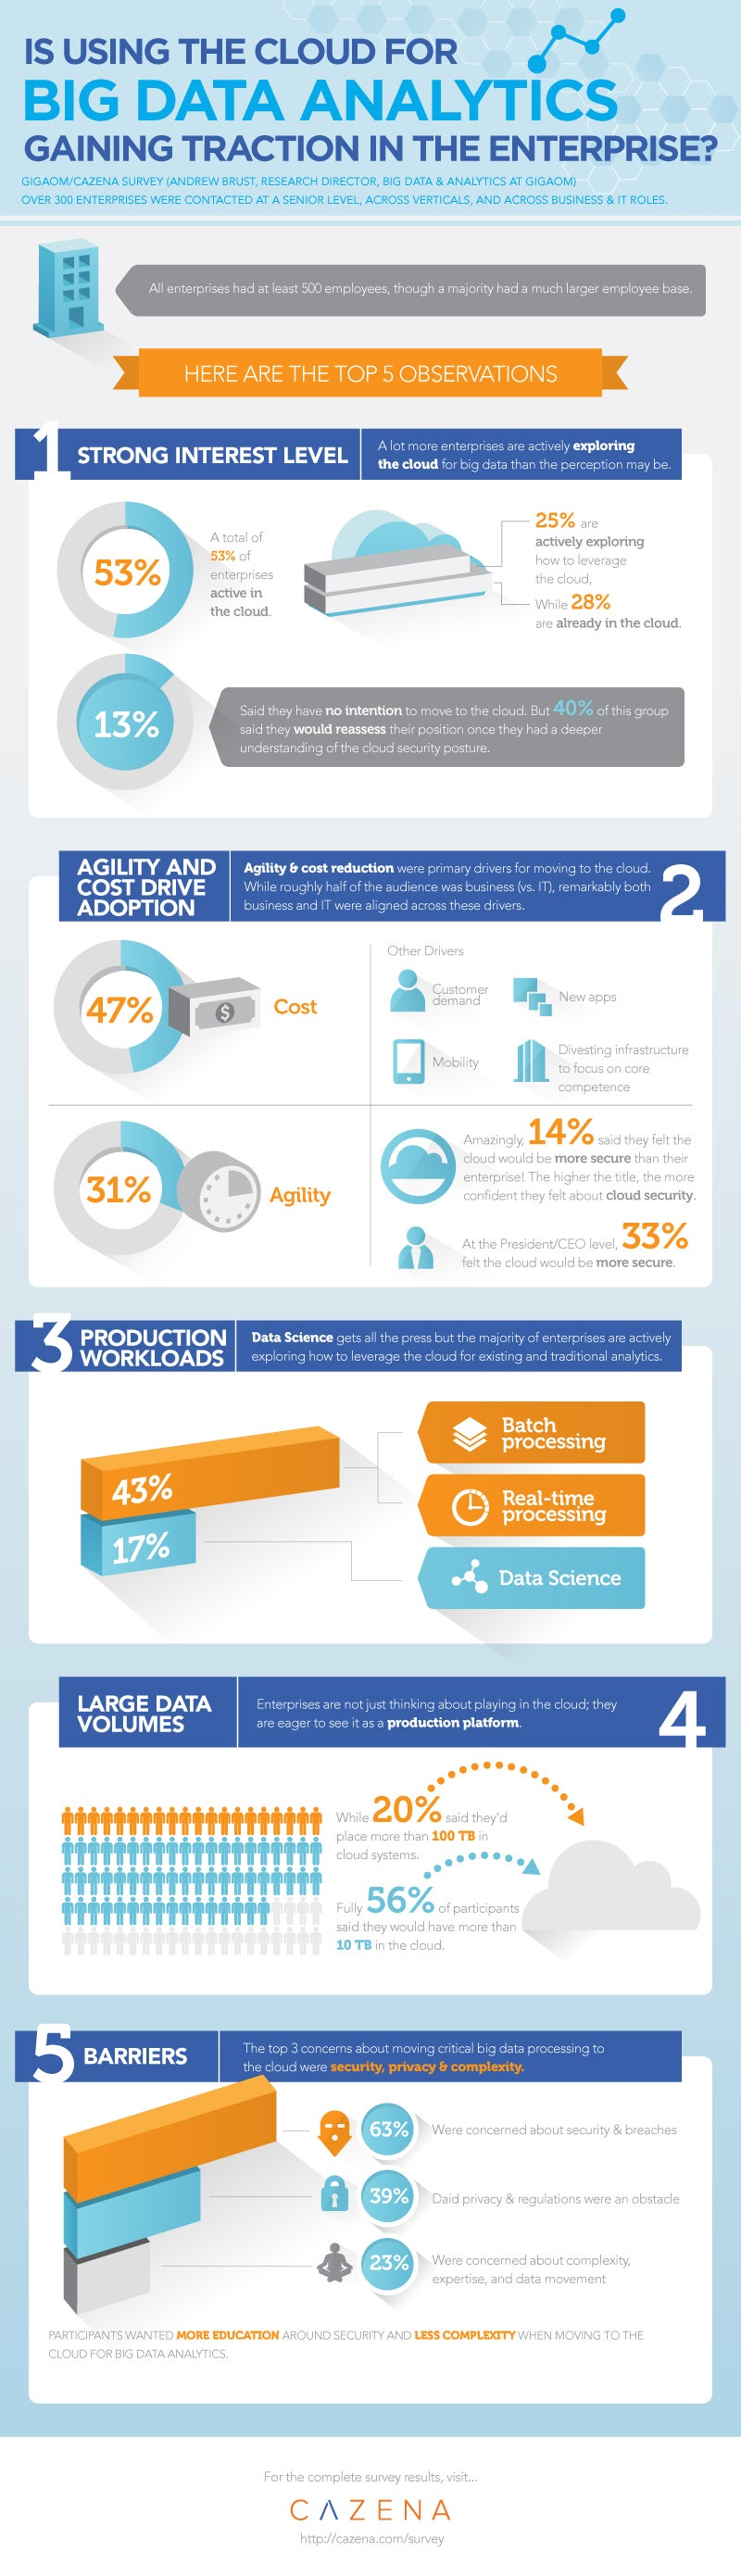 Facts and Myths of Business and Big Data in the Cloud (Infographic)